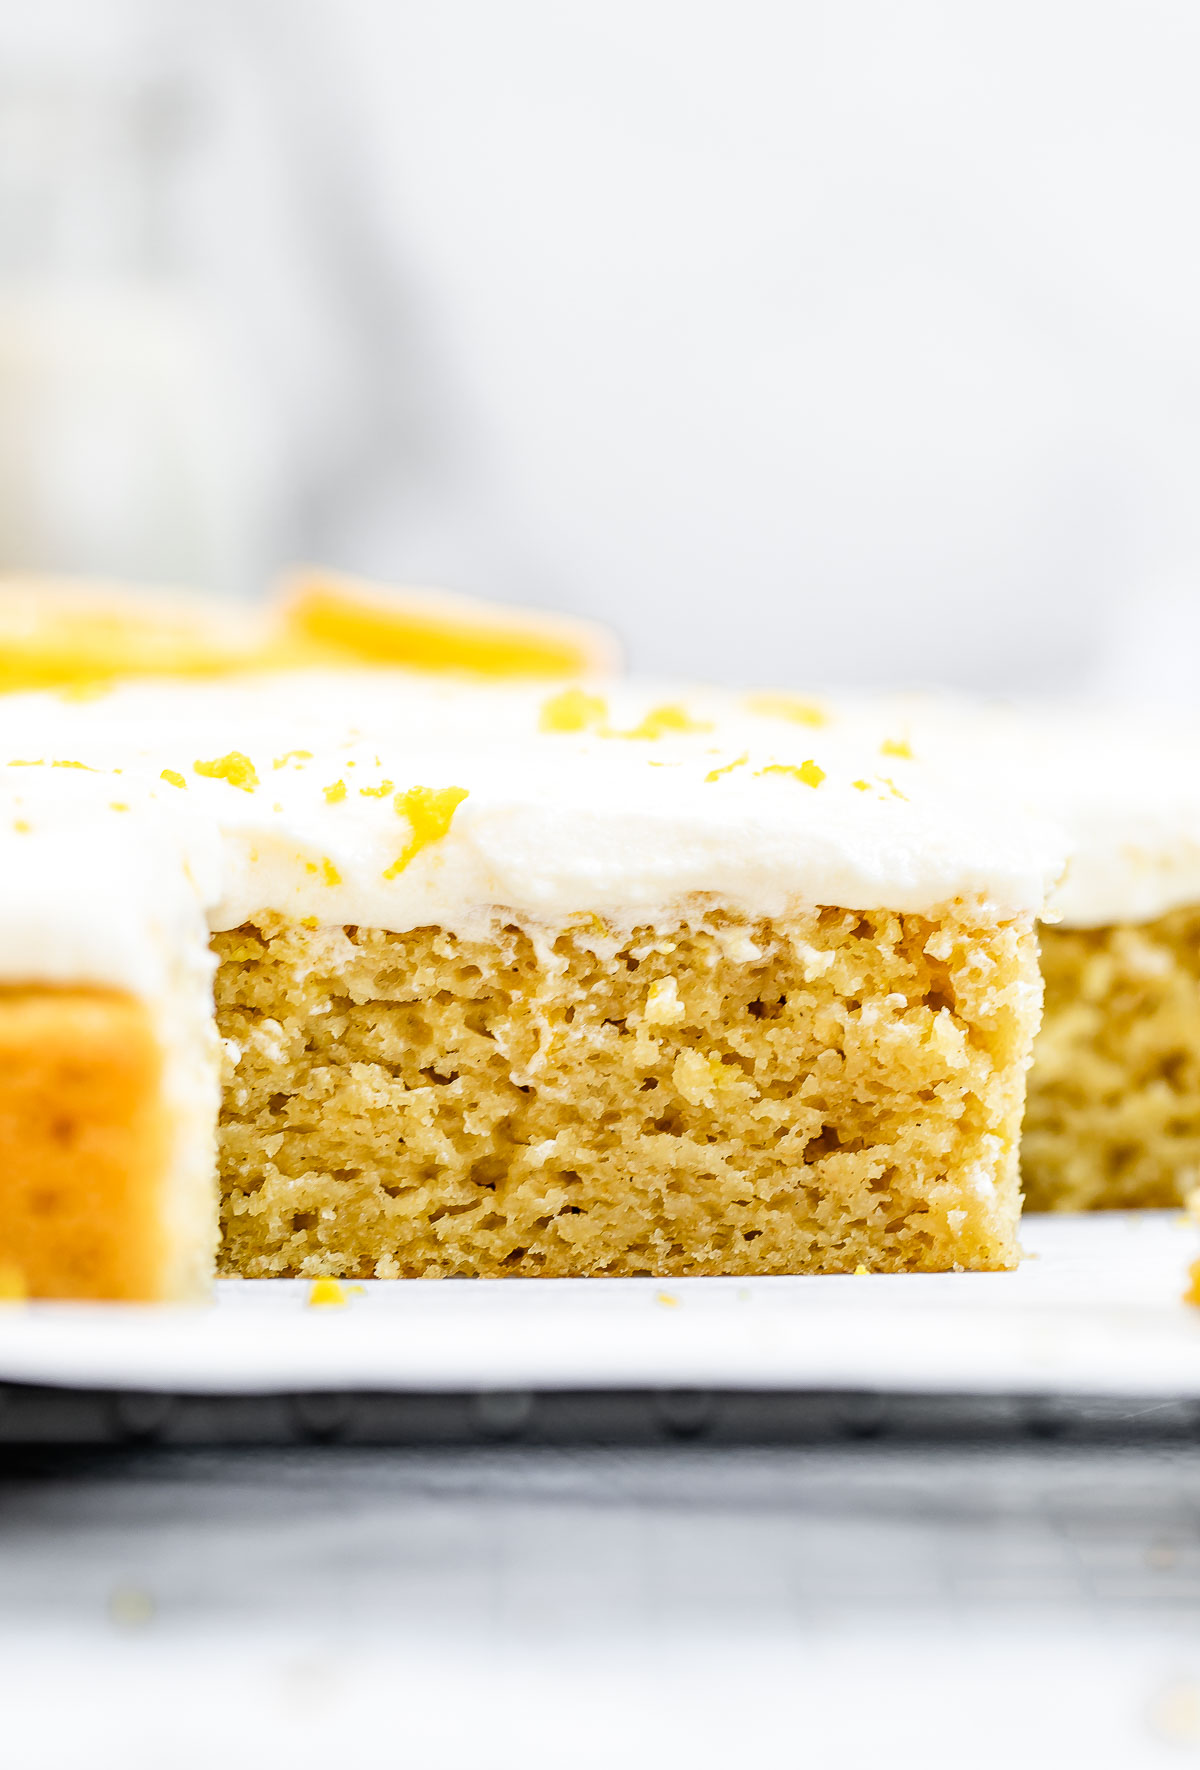 lemon sheet cake with lemon wedges on top